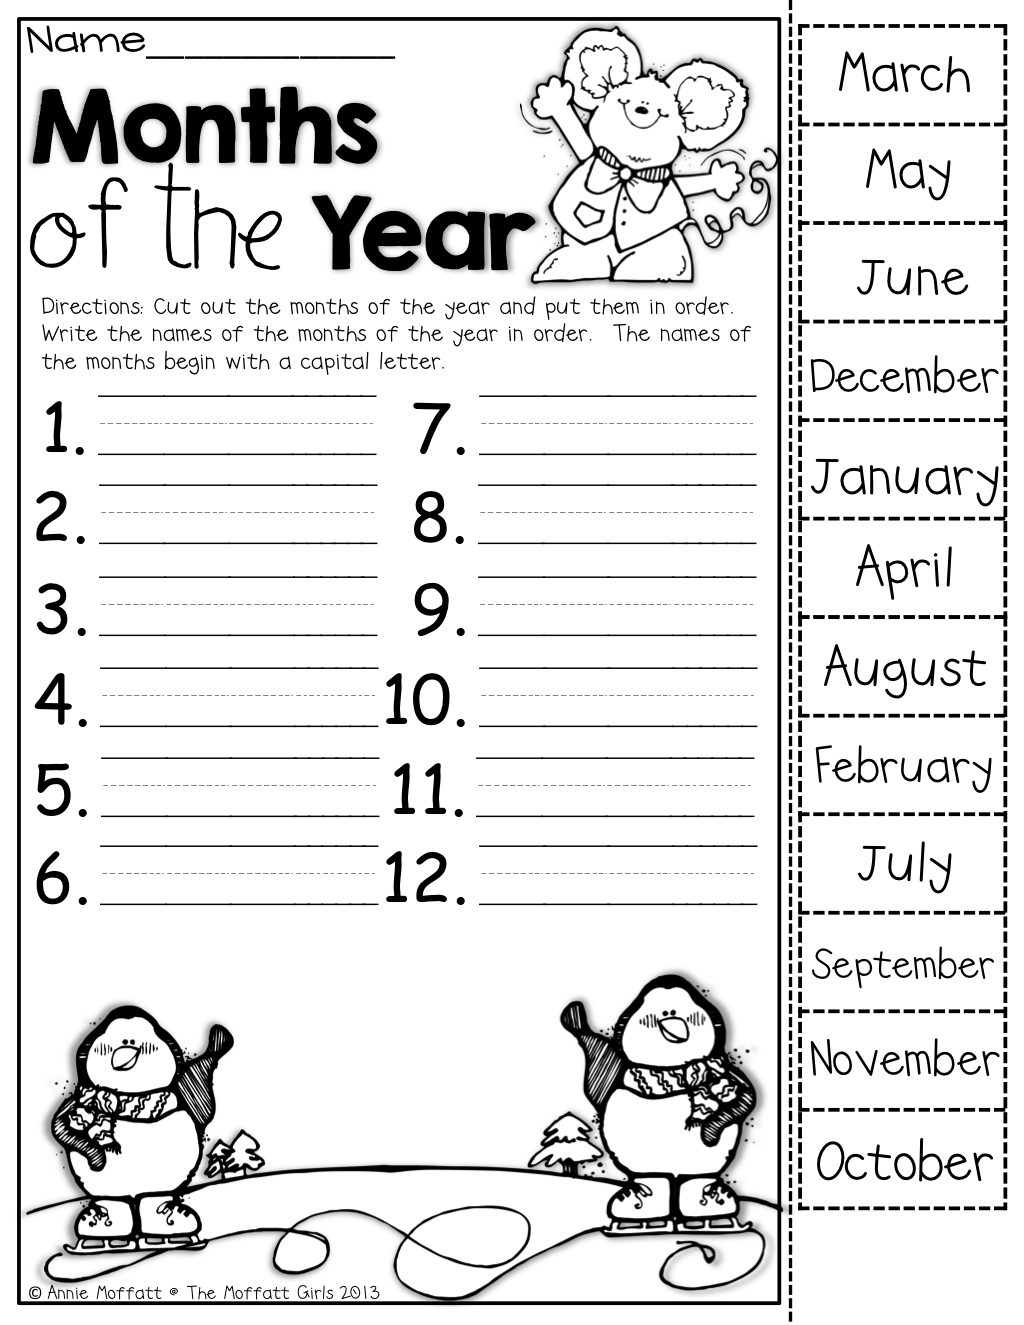 Months of the Year Worksheet Printable Worksheets – Months of the Year Worksheets for Kindergarten